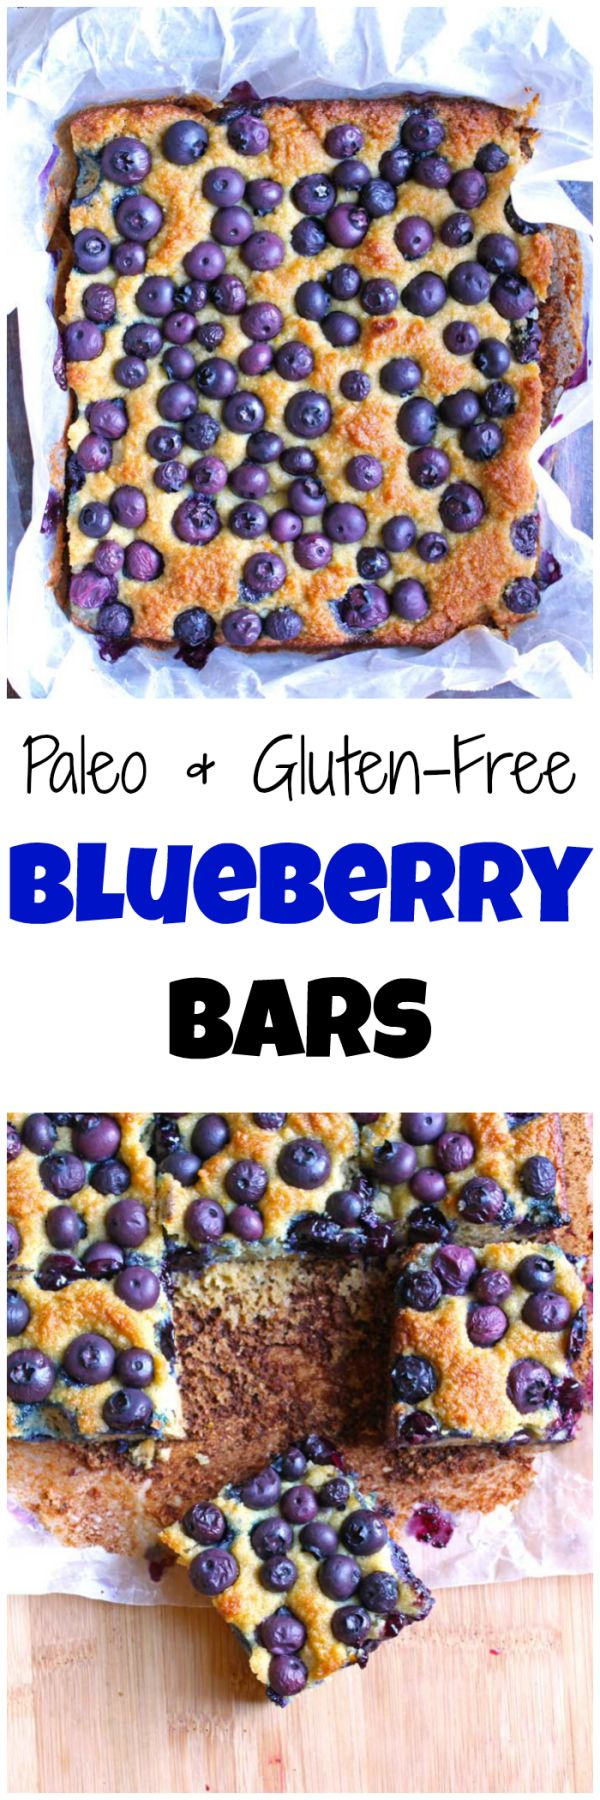 Paleo Blueberry Bars   Need a quick grab-and-go breakfast? Or a simple mid-morning snack? These breakfast bars are made with all clean eating ingredients so pin now to make later this week!